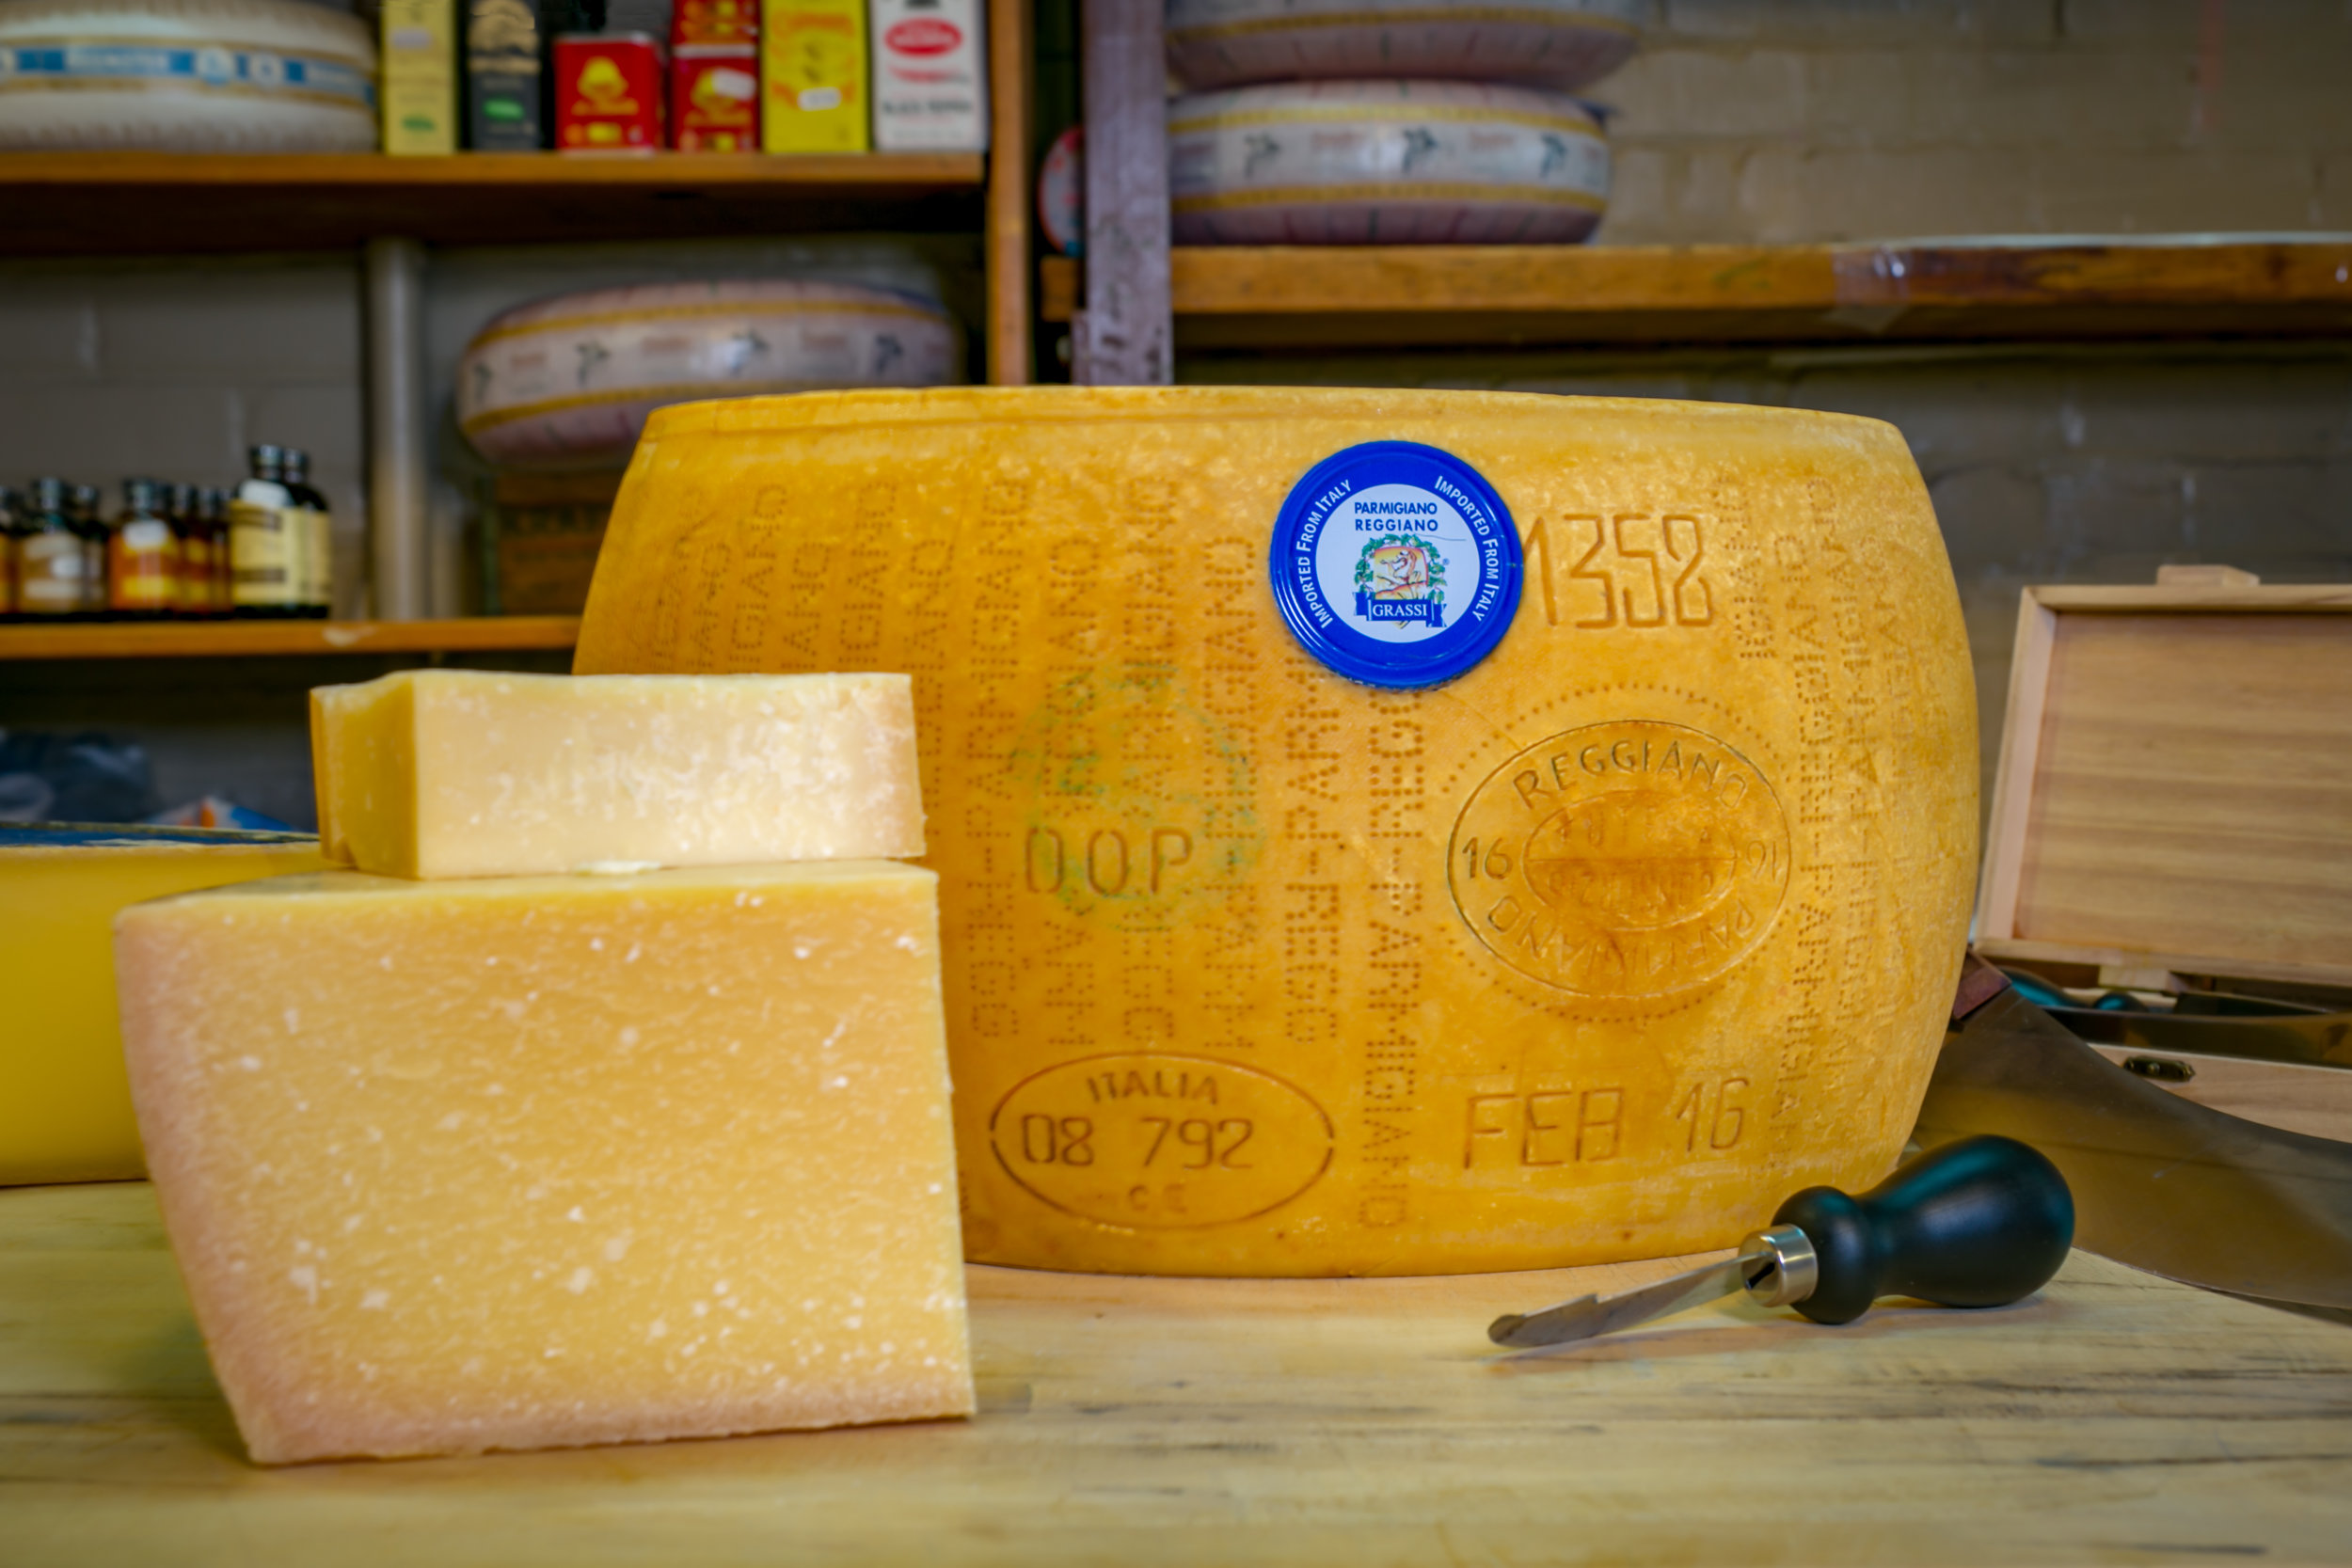 Parmesean Reggiano from Italy.  We purchase 90 lb wheels and cut them open on site to ensure the freshest cheese possible.